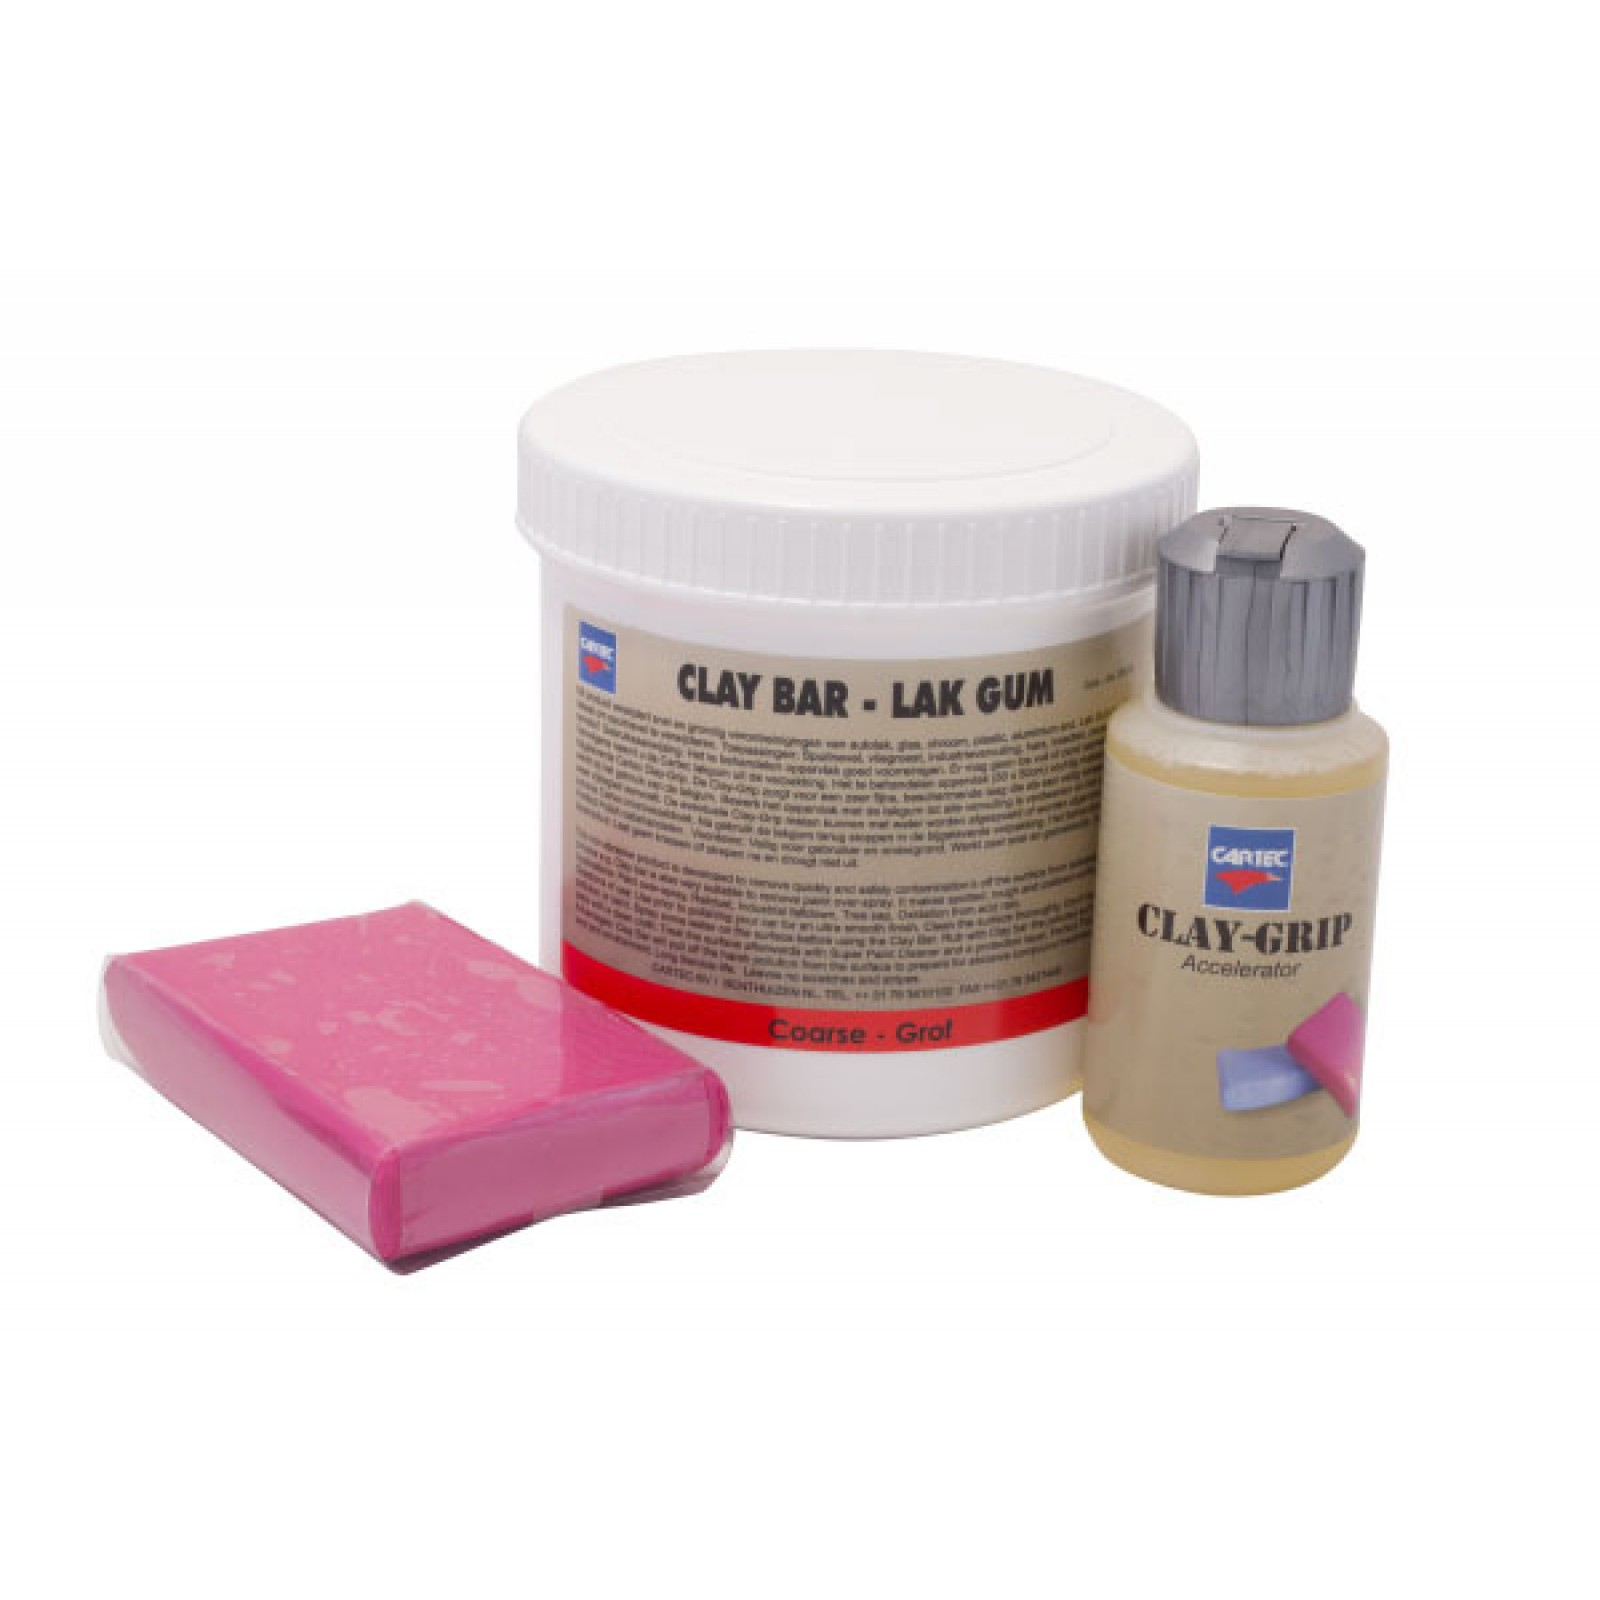 Lakgum Grof/Rood (Incl. 100ml Clay Grip) 200gr